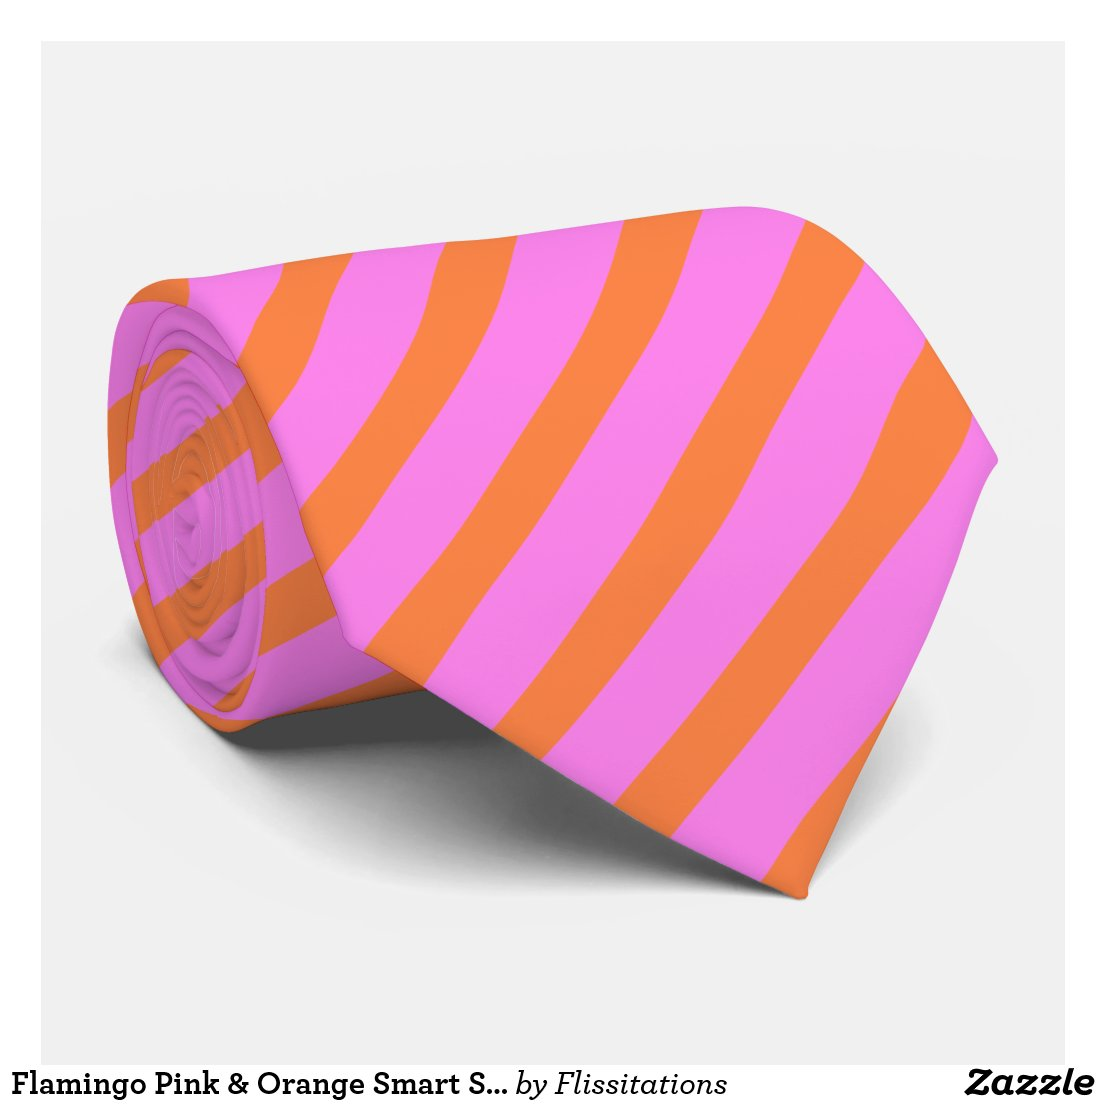 Flamingo Pink & Orange Smart Stripe Patterned Tie